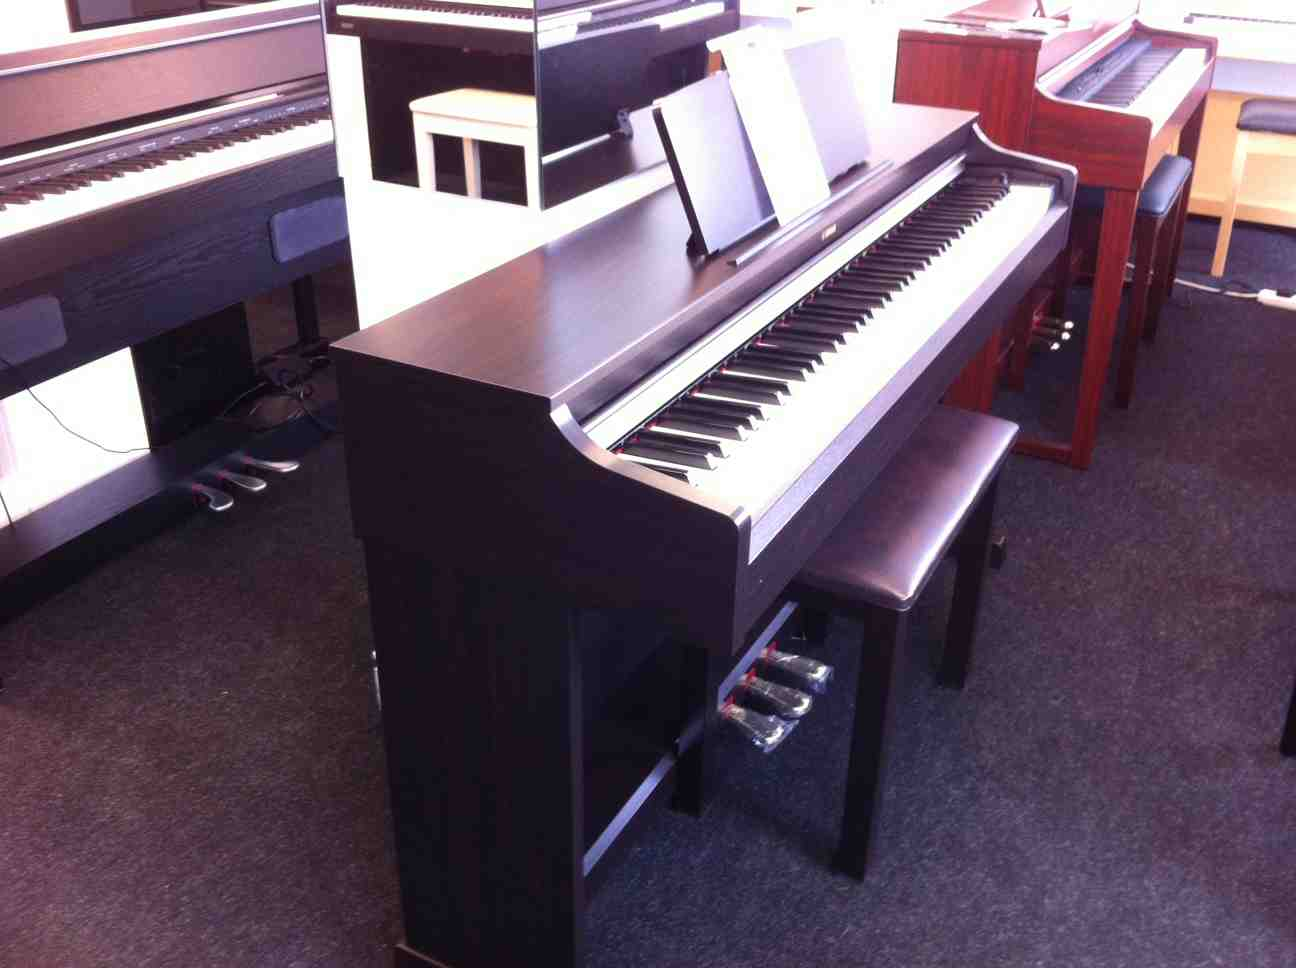 Yamaha YDP162 on display in our showroom